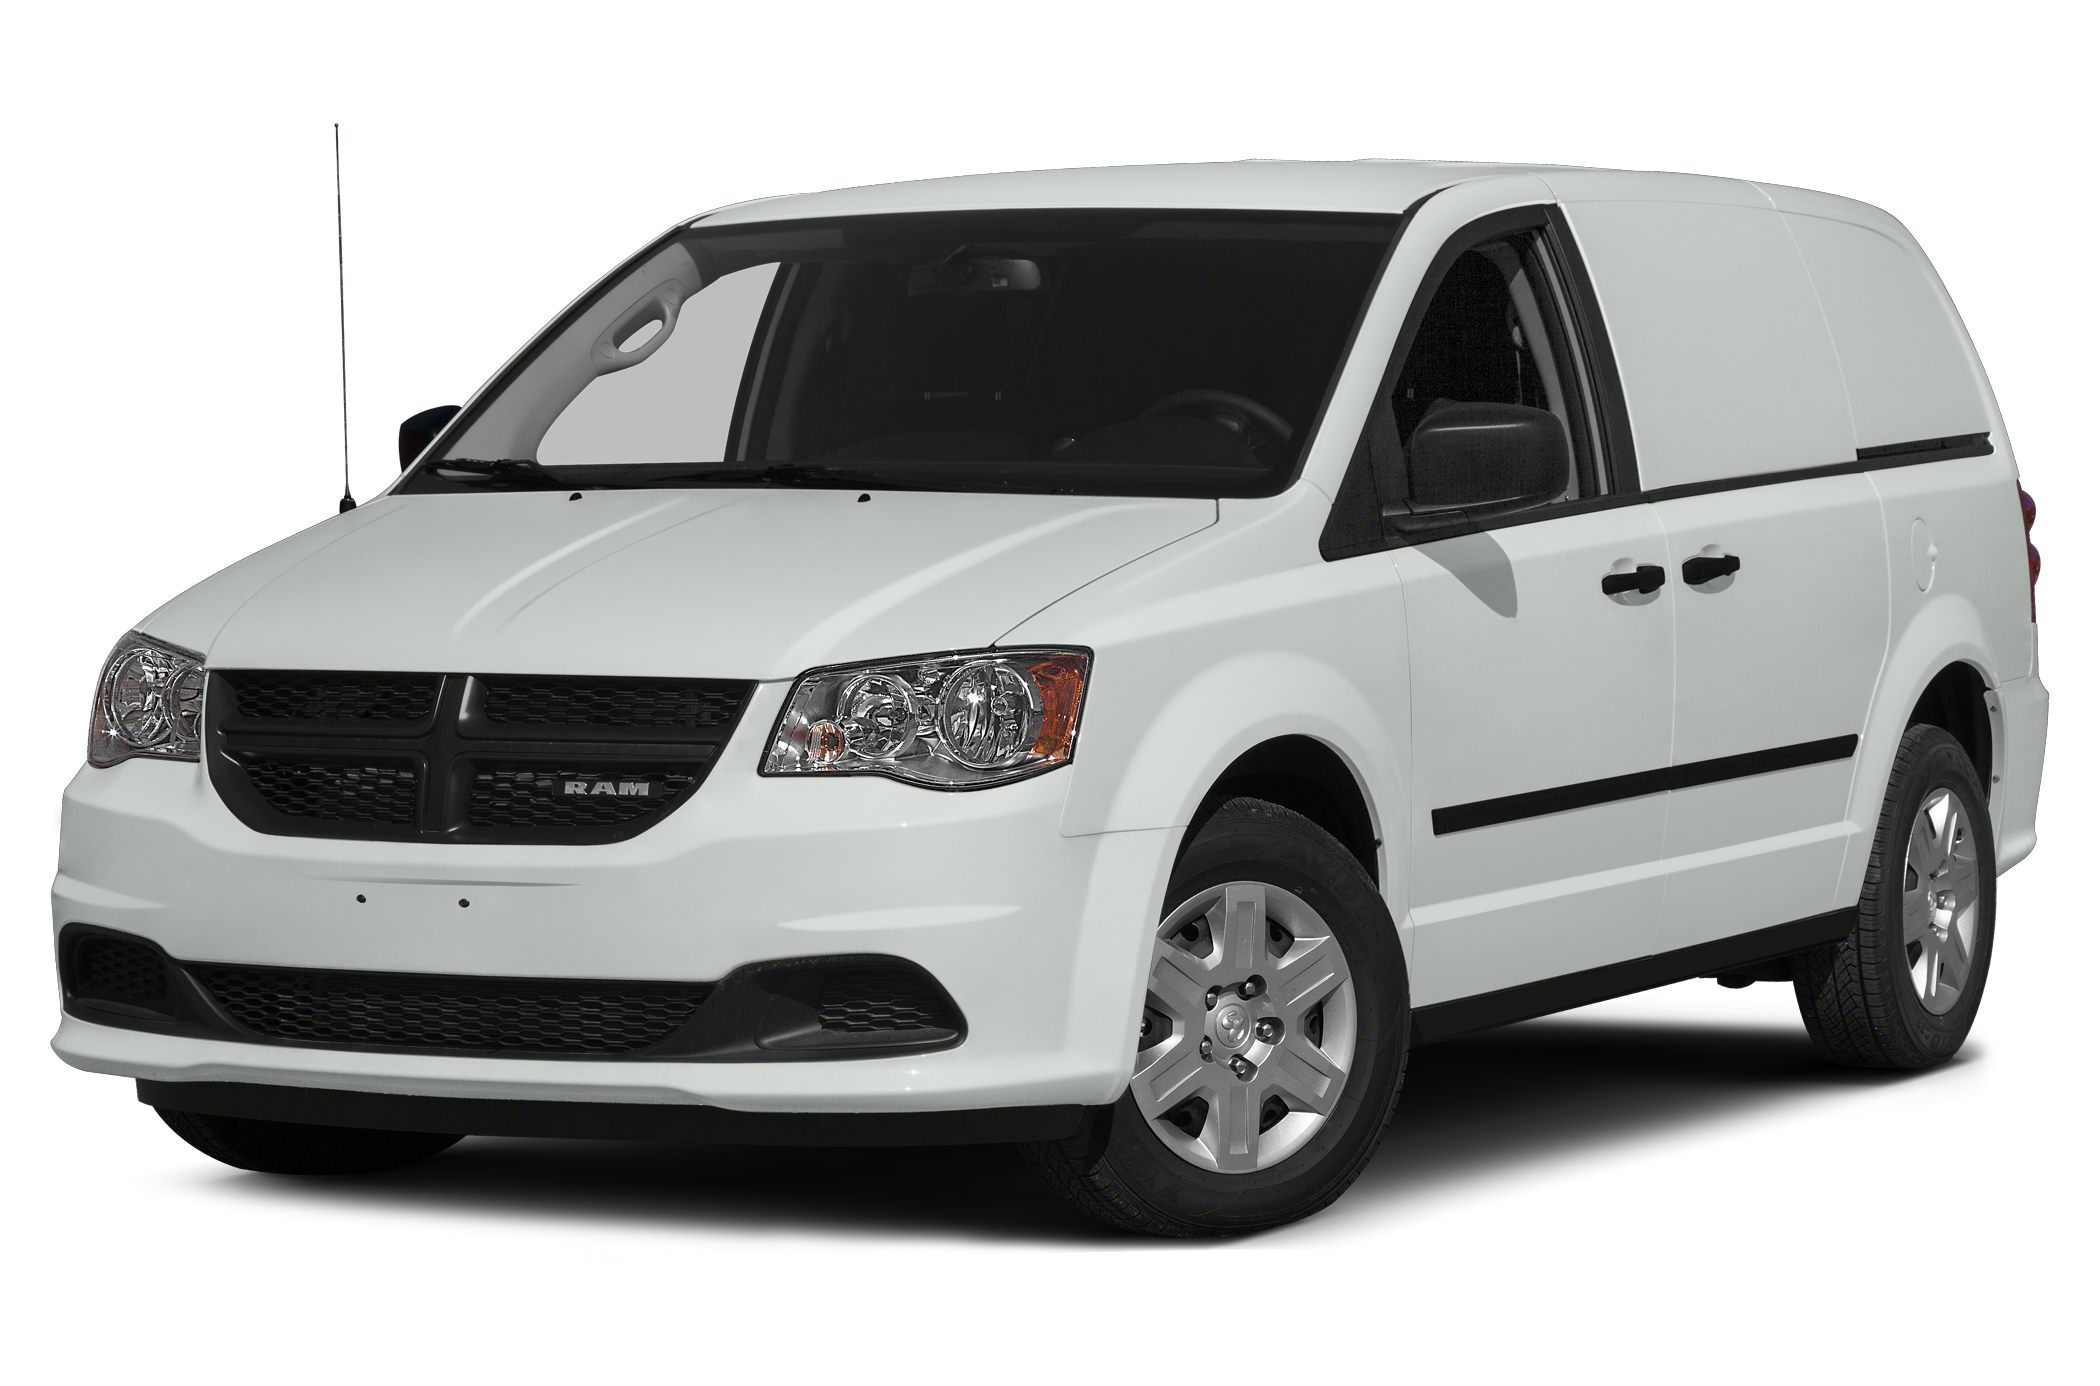 2015 RAM Cargo Tradesman Cargo Van for sale in Greenfield for $25,155 with 8 miles